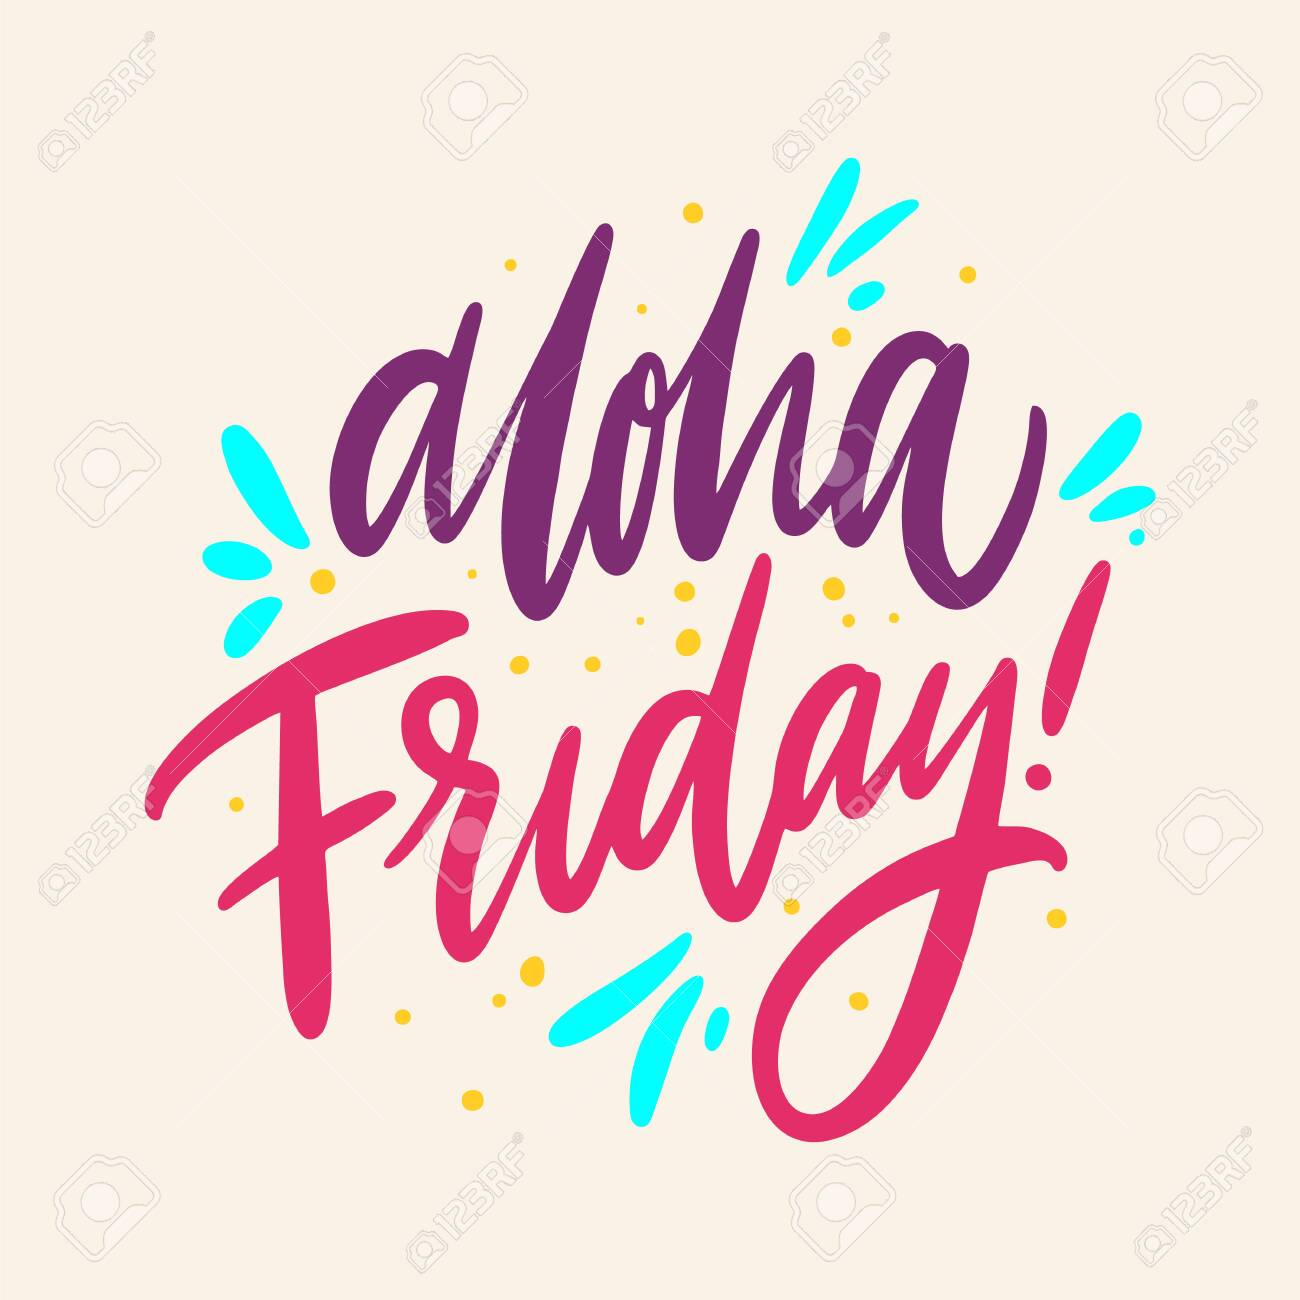 Aloha friday Hand drawn vector lettering  Isolated on background